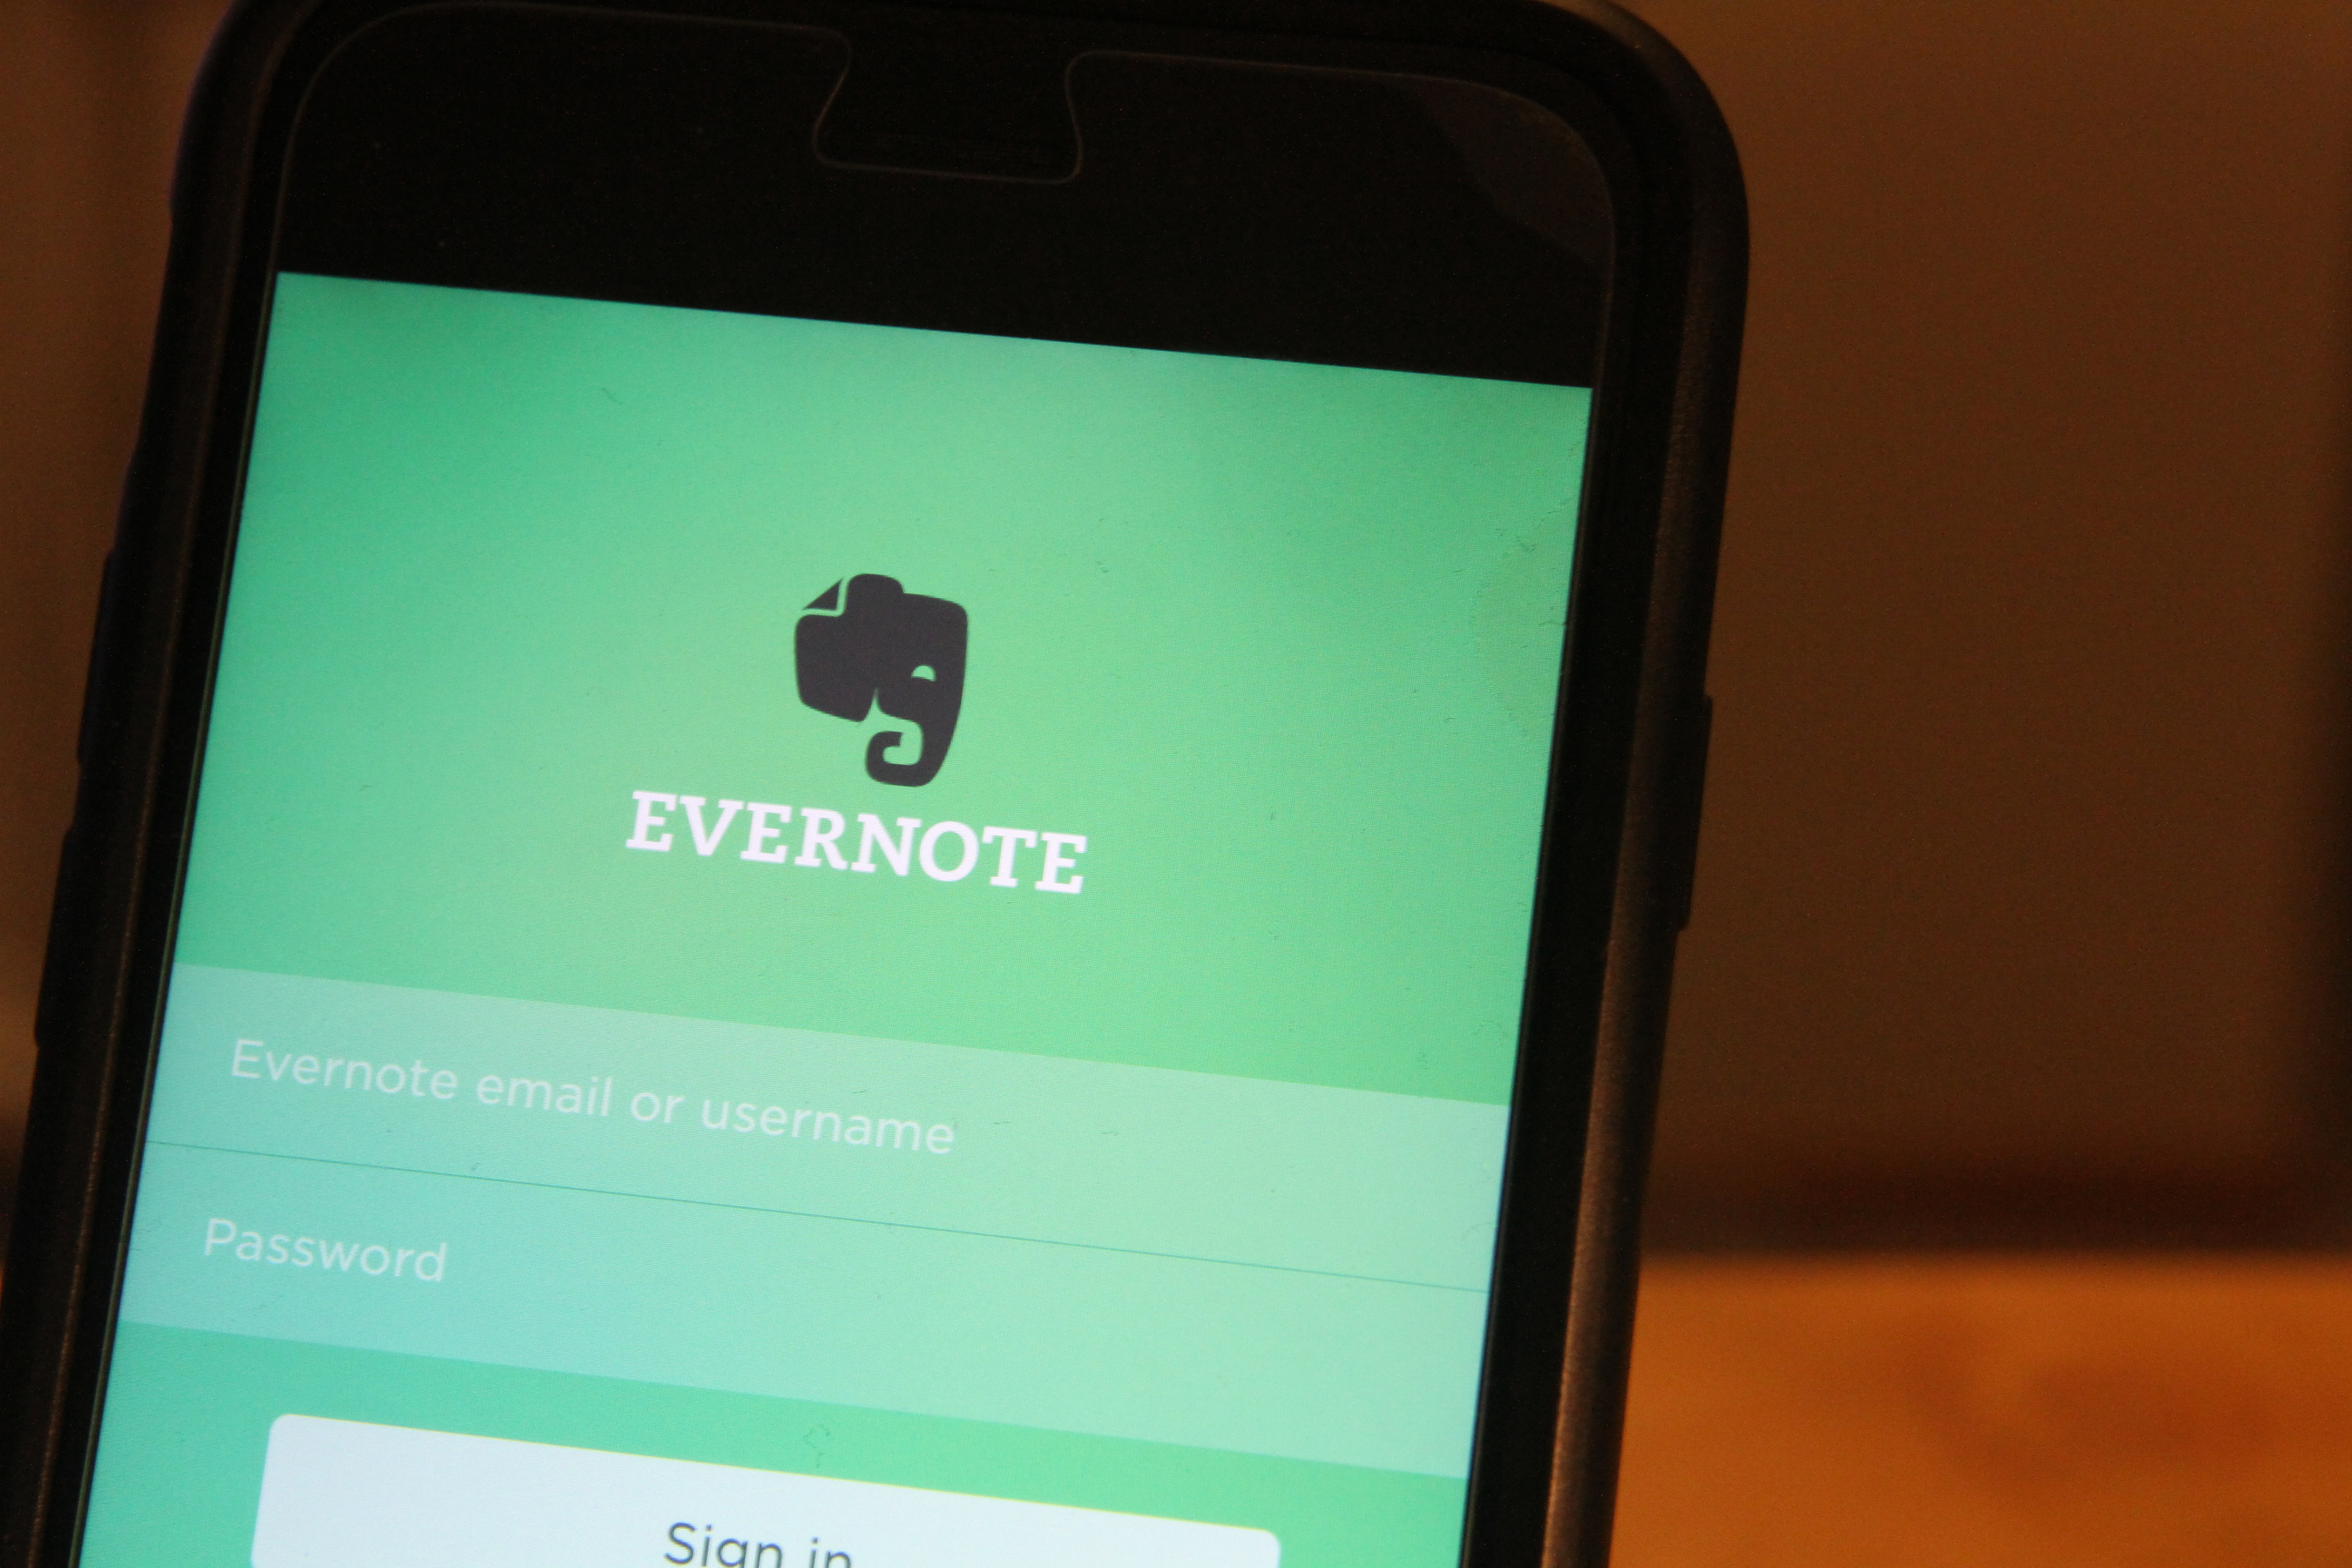 Evernote is no longer free if you want to sync more than 2